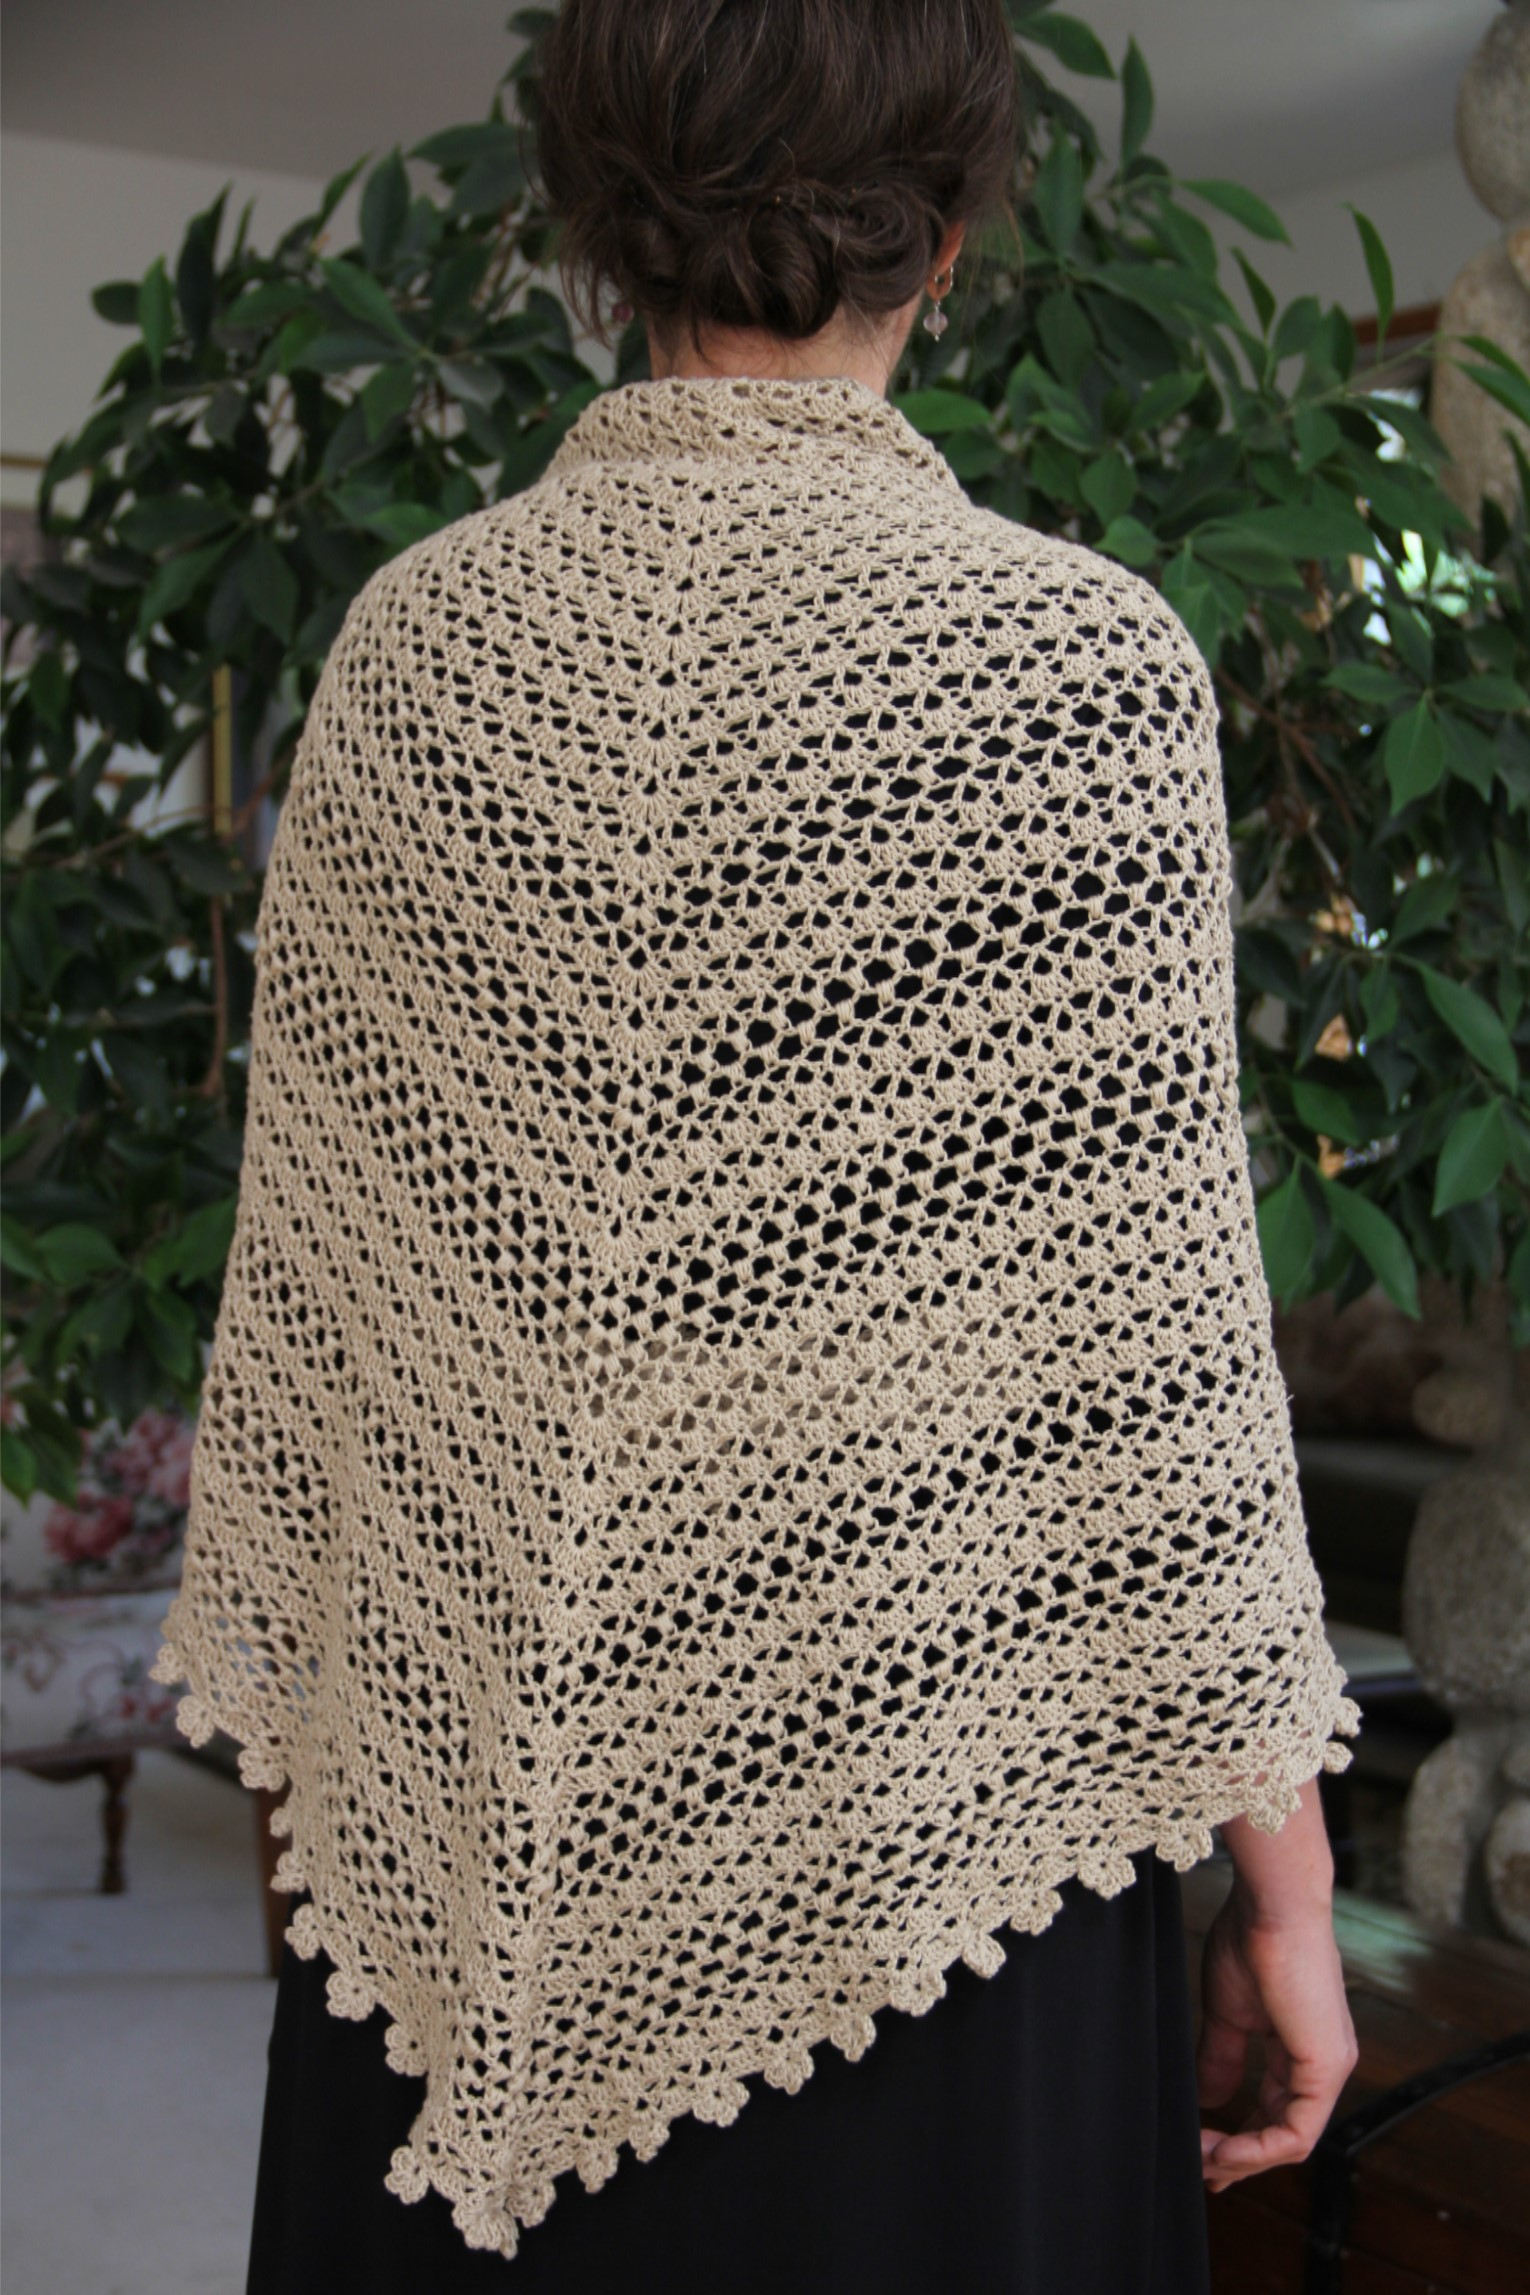 Crochet Shawl Patterns : Free Crochet Shawl Pattern Worked In A Basic Trellis Pattern Pictures ...